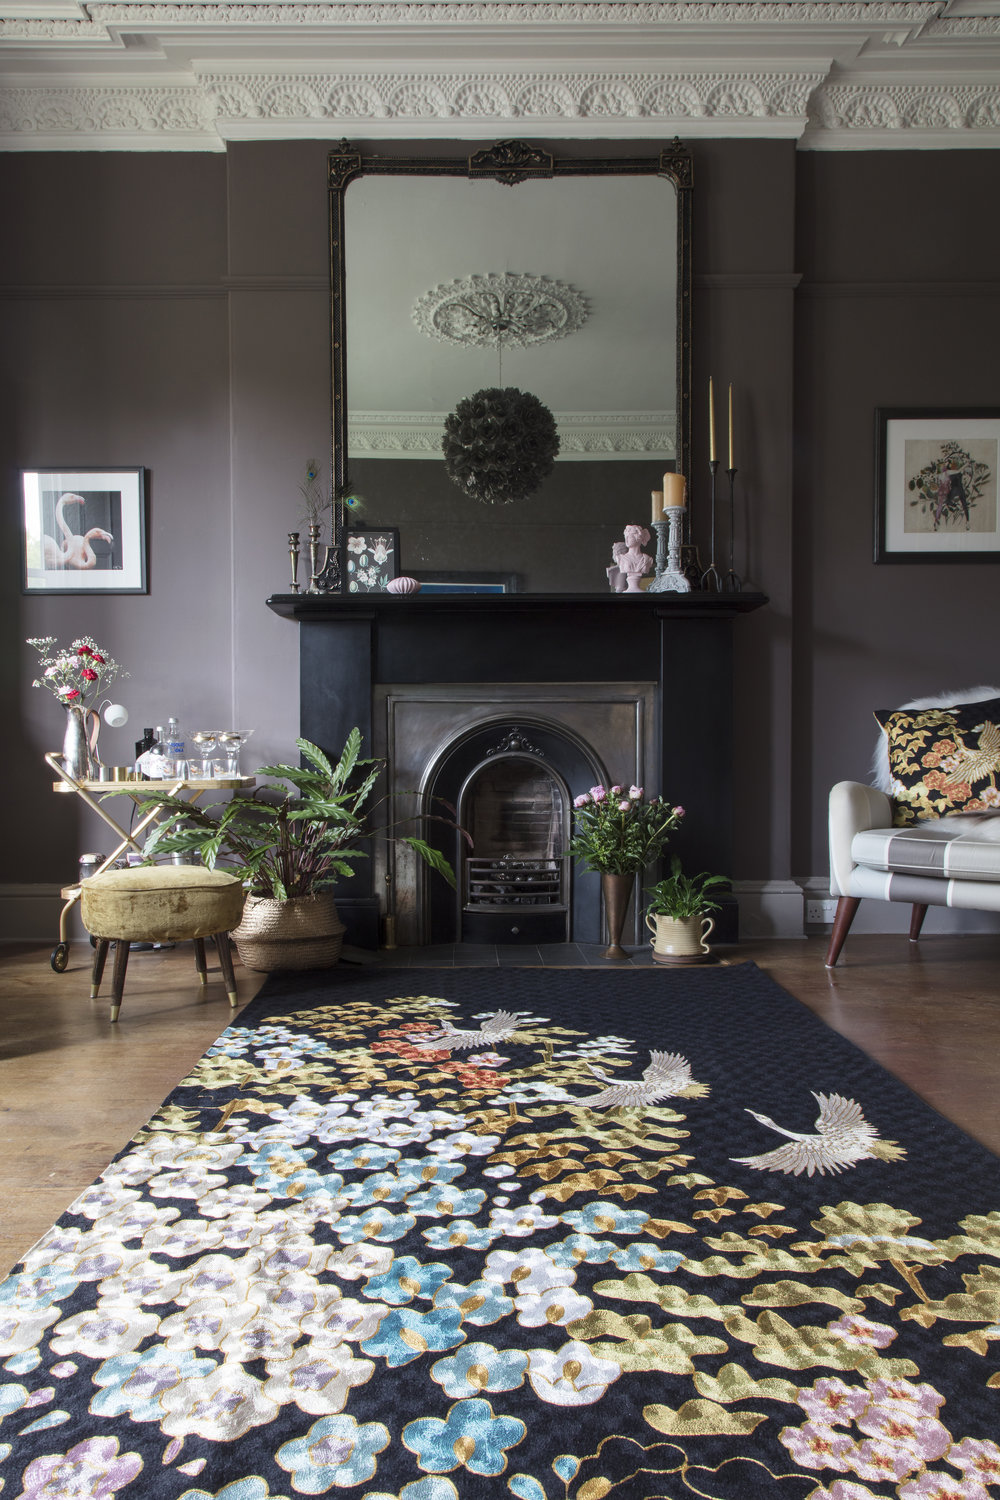 Wendy's Mount Orient rug in the Home of Fiona Cameron @around_houses